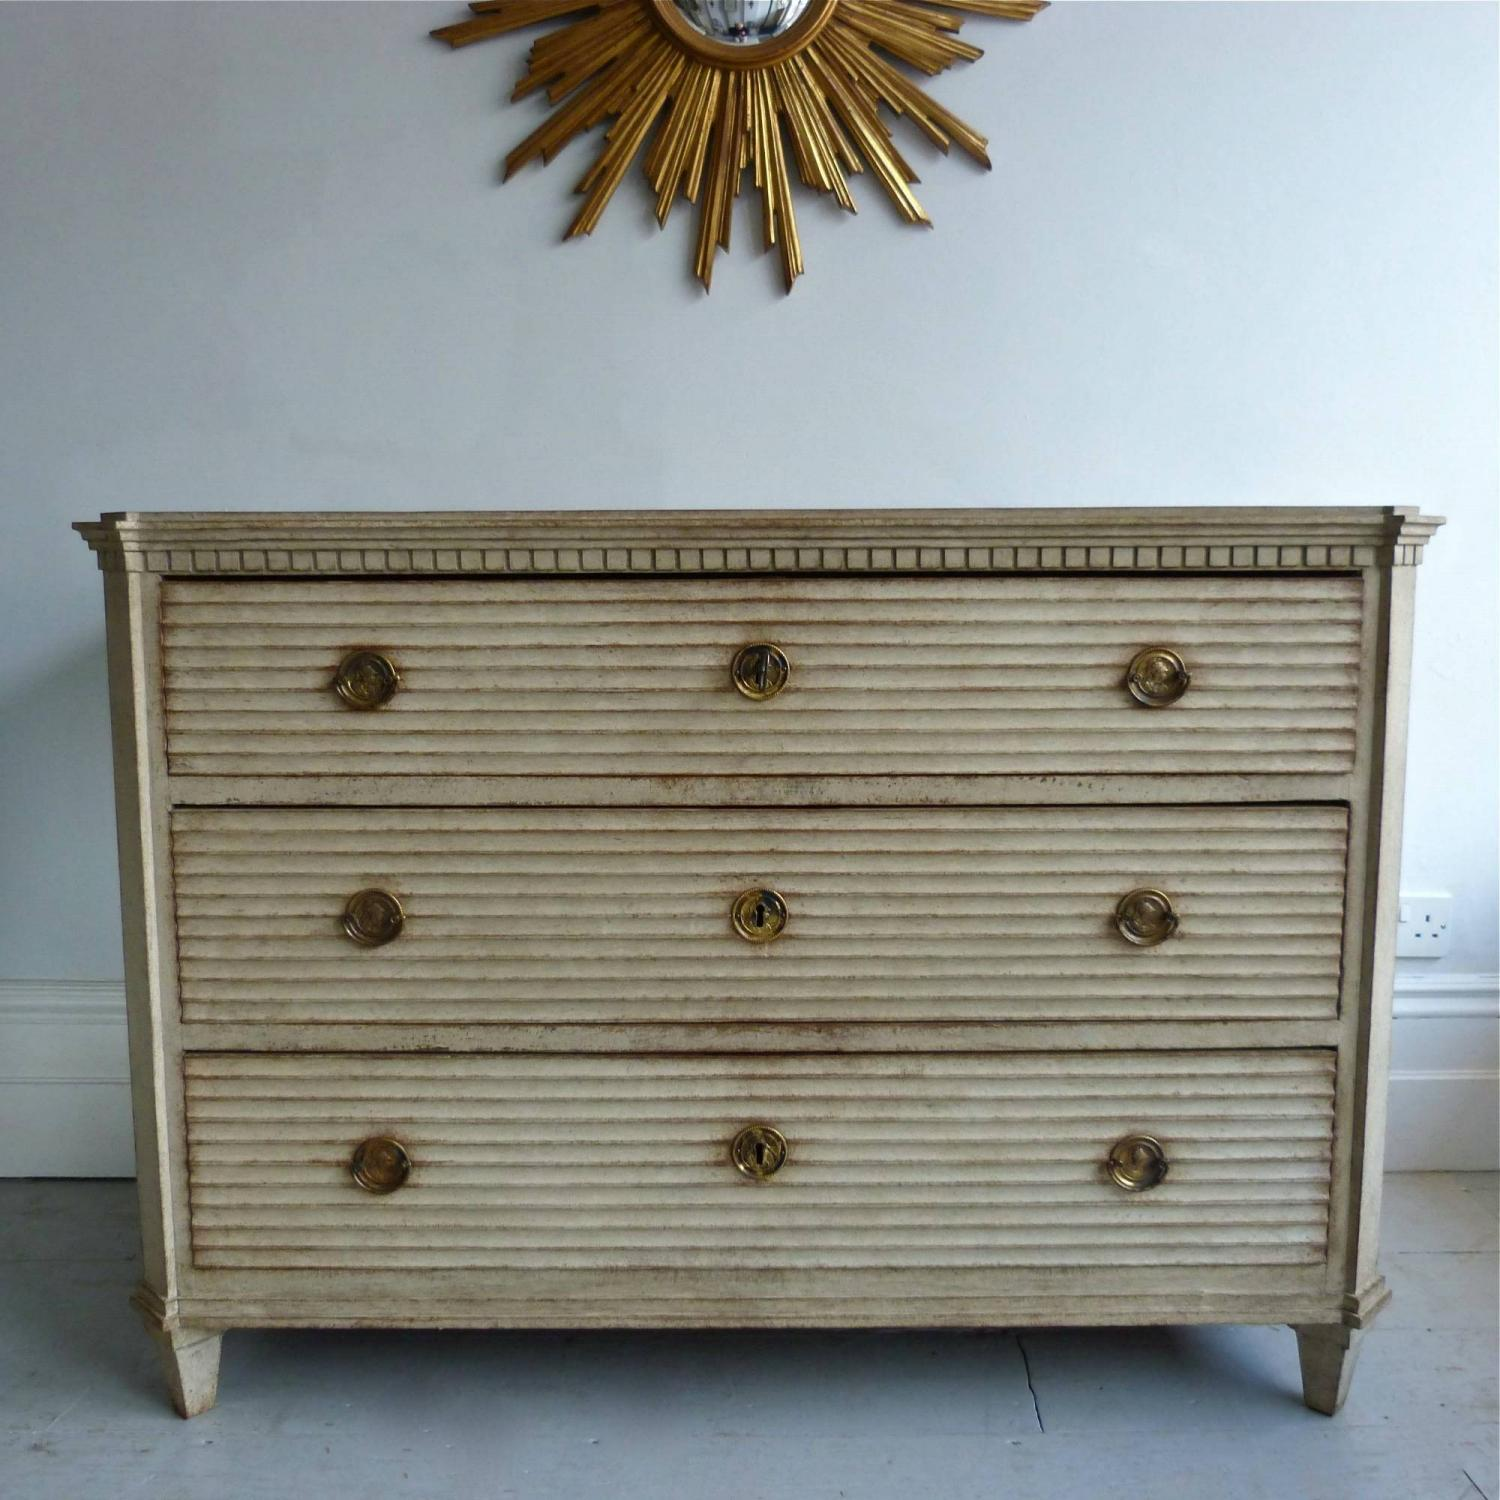 FINE SWEDISH GUSTAVIAN STYLE CHEST OF DRAWERS